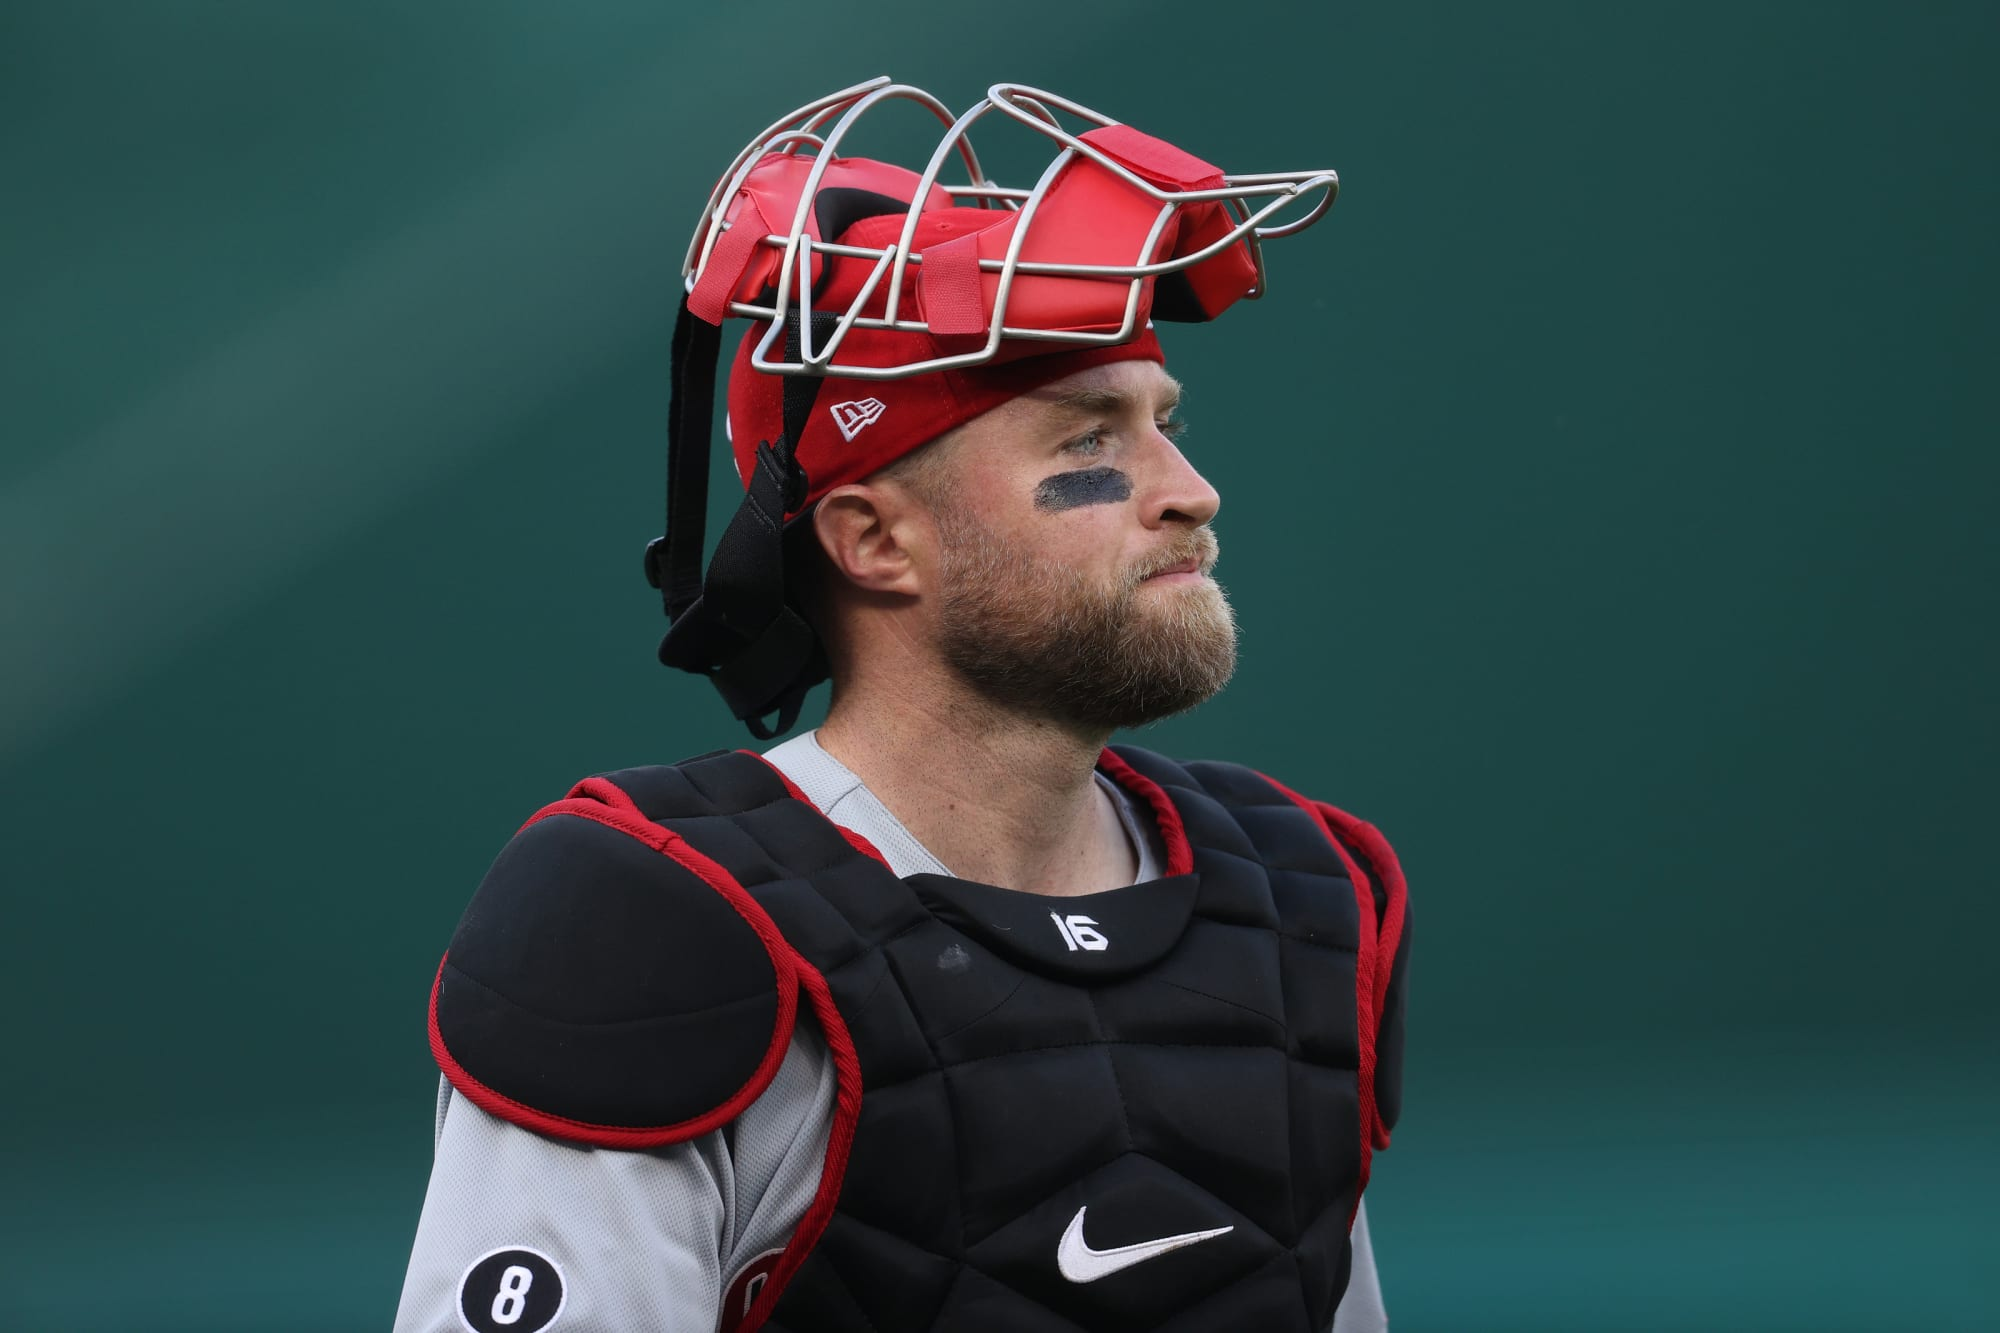 Reds: 3 players who should be All-Stars, but will fall short